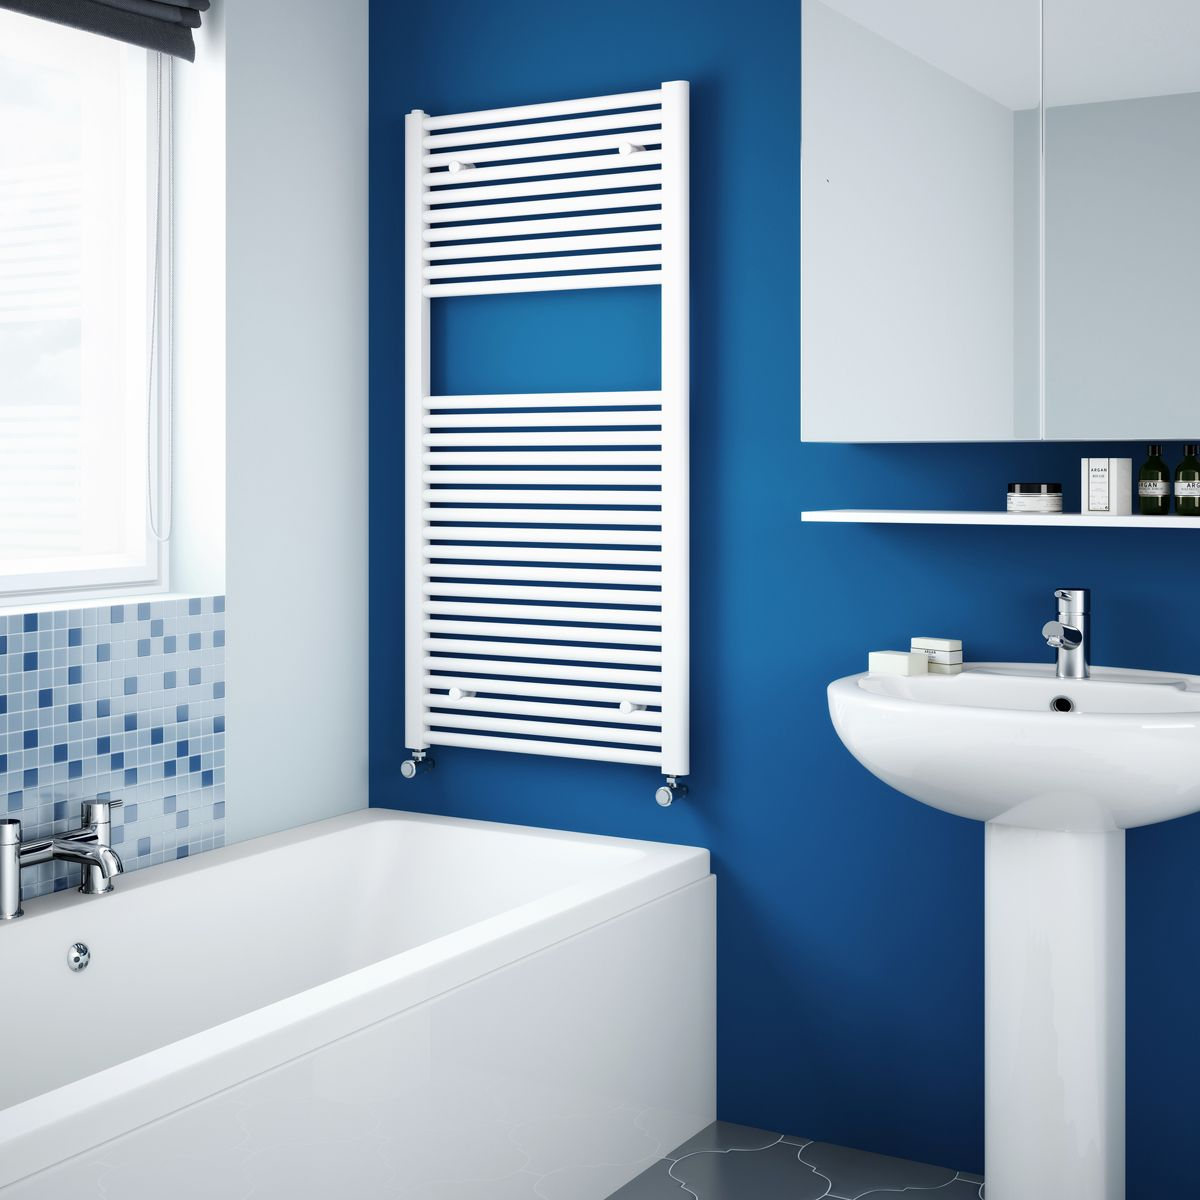 The Stelrad Classic Towel Rail is sophistication born from ...